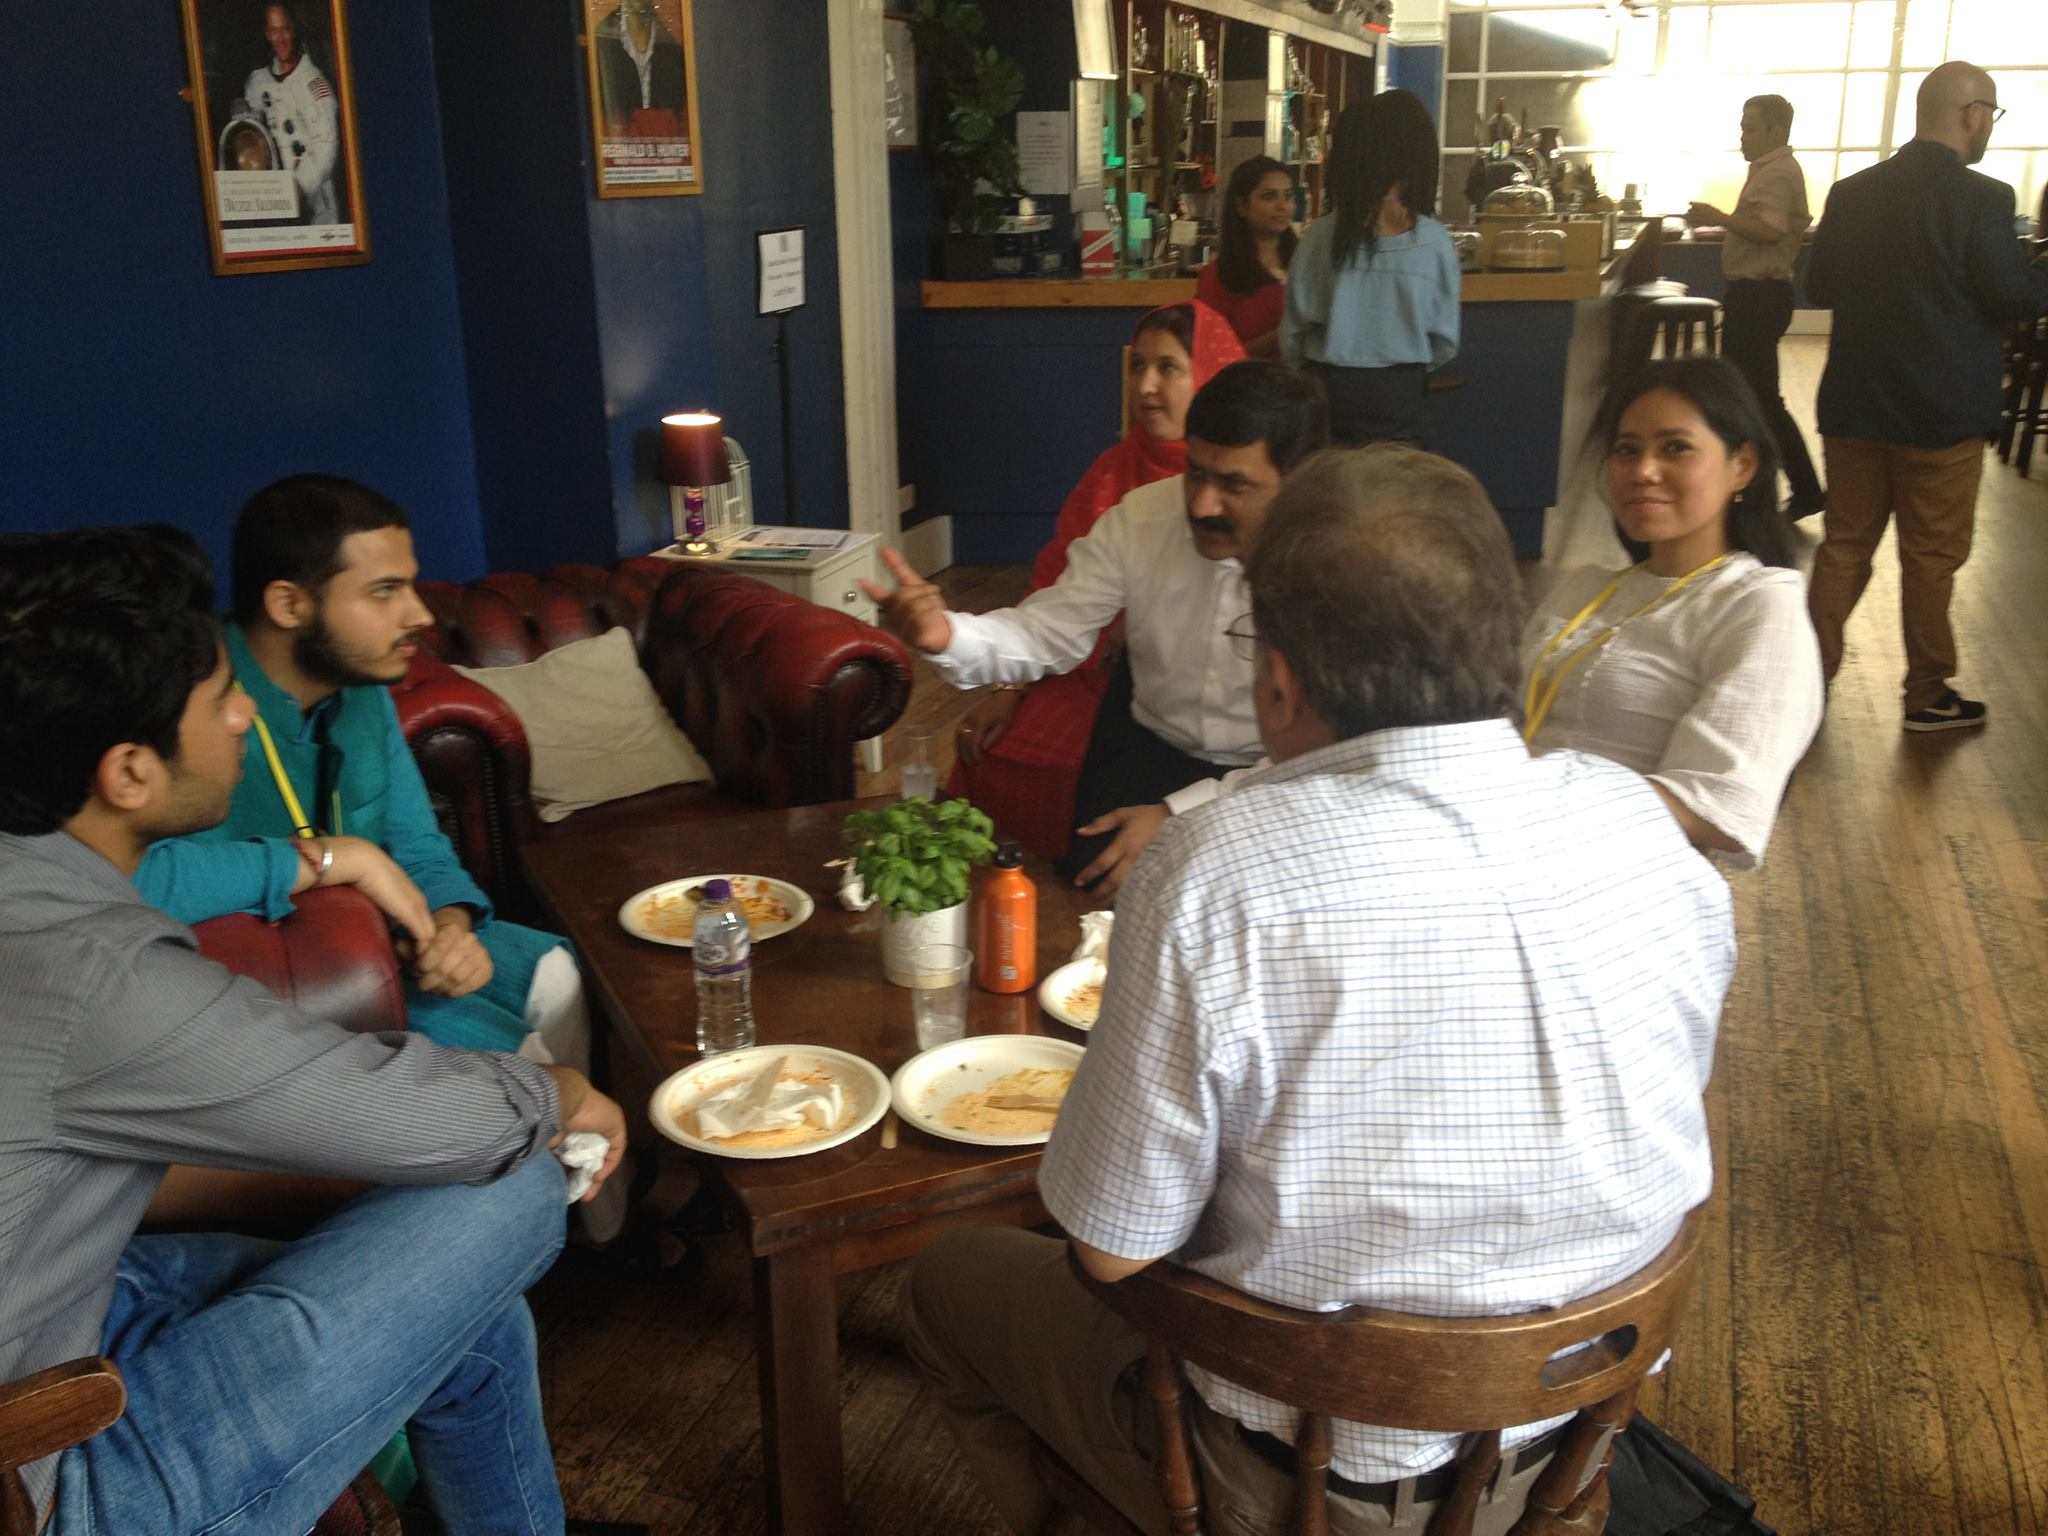 Meeting Malala's parents over lunch